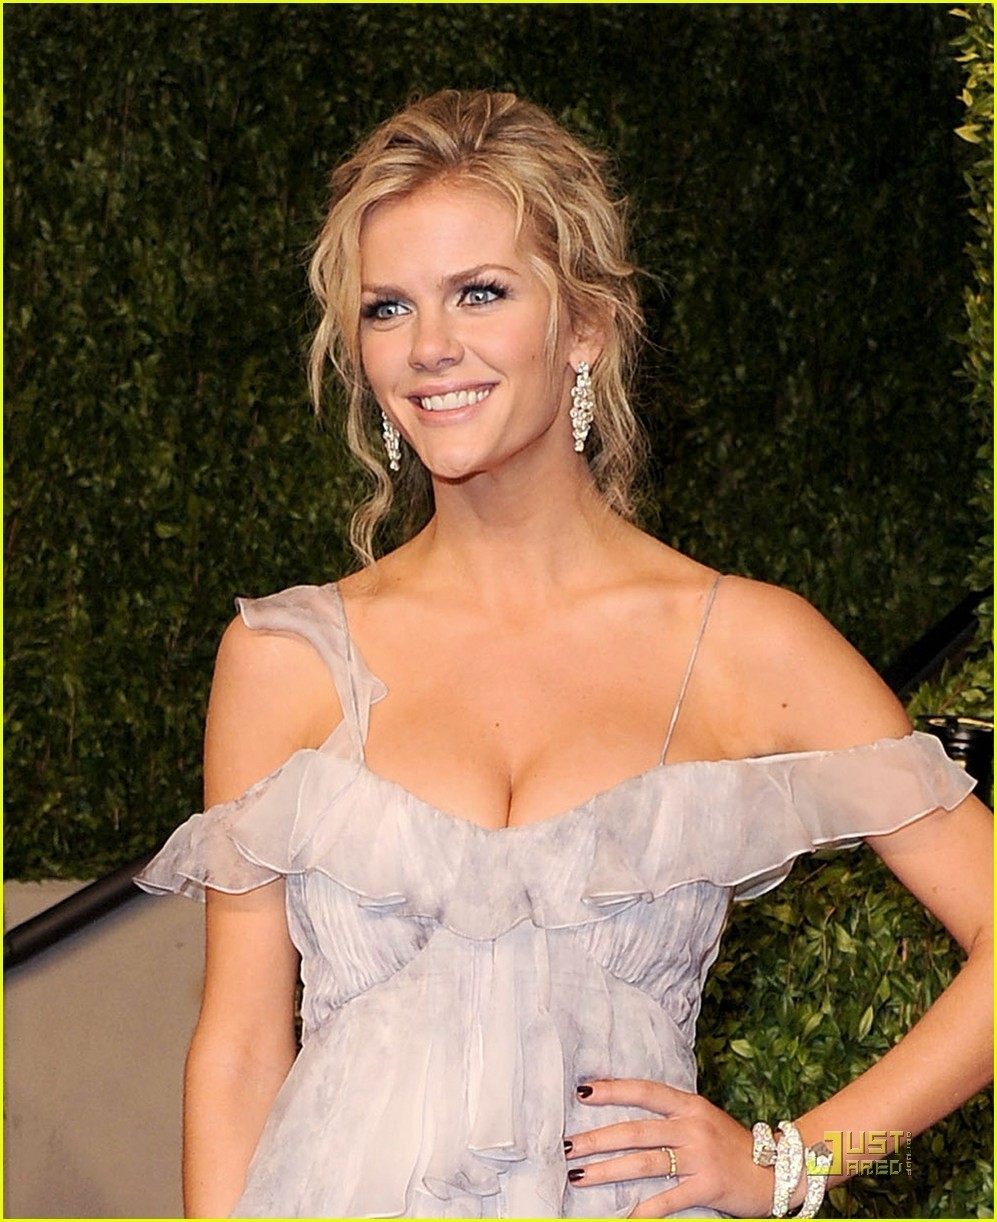 Super Model : Brooklyn... Brooklyn Decker